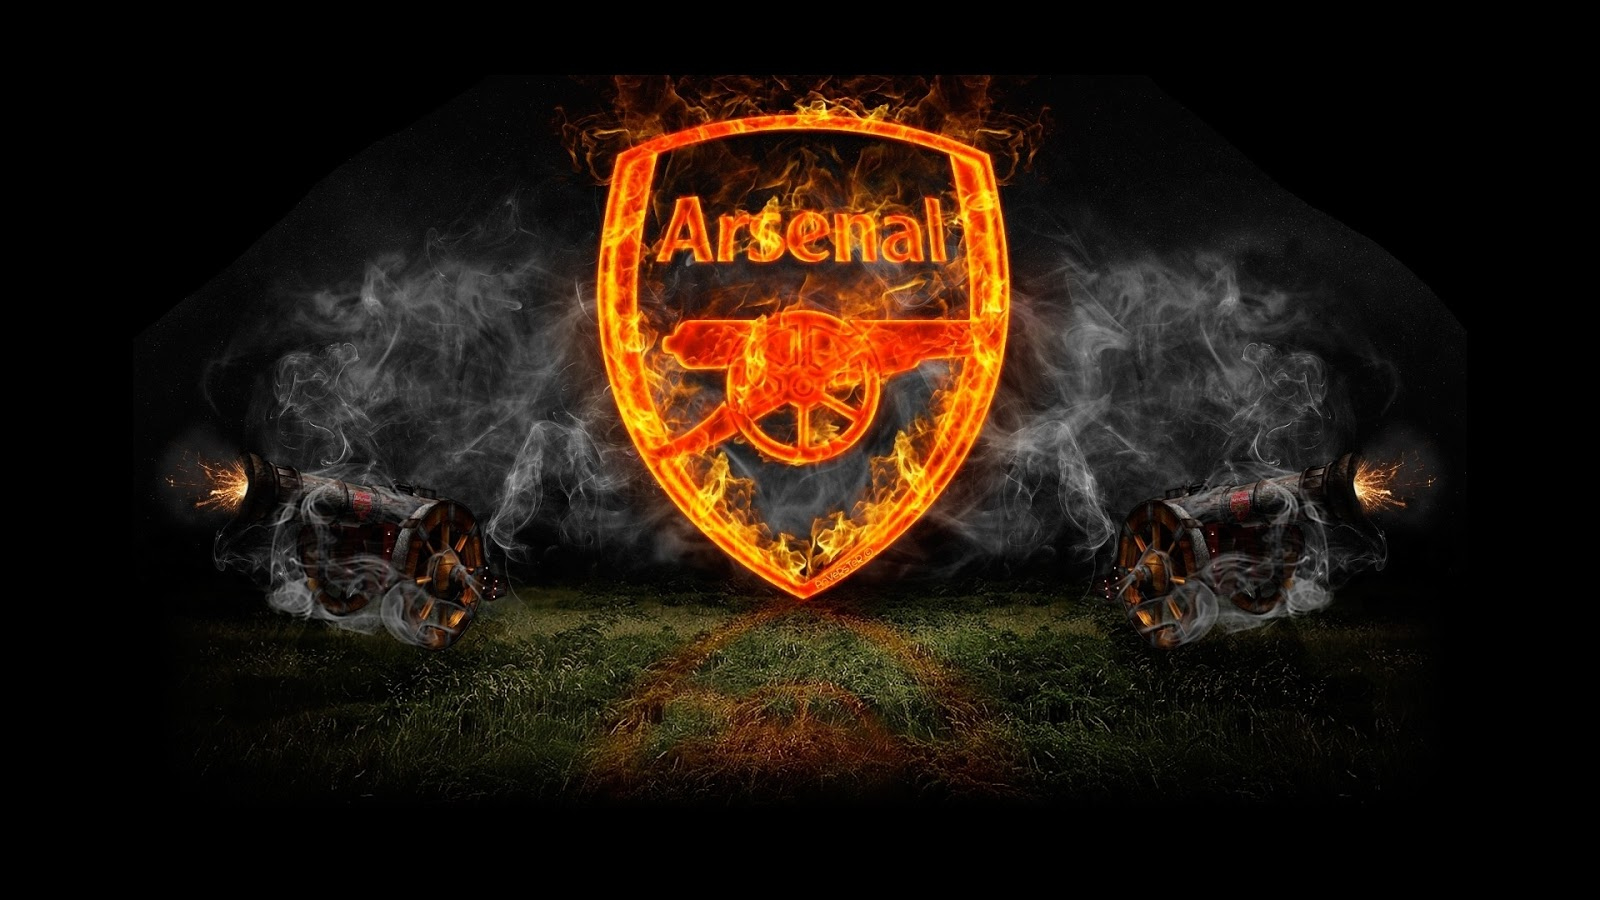 Arsenal Fc Logo: Wallpapers Hd For Mac: Arsenal Football Club Logo Wallpaper HD